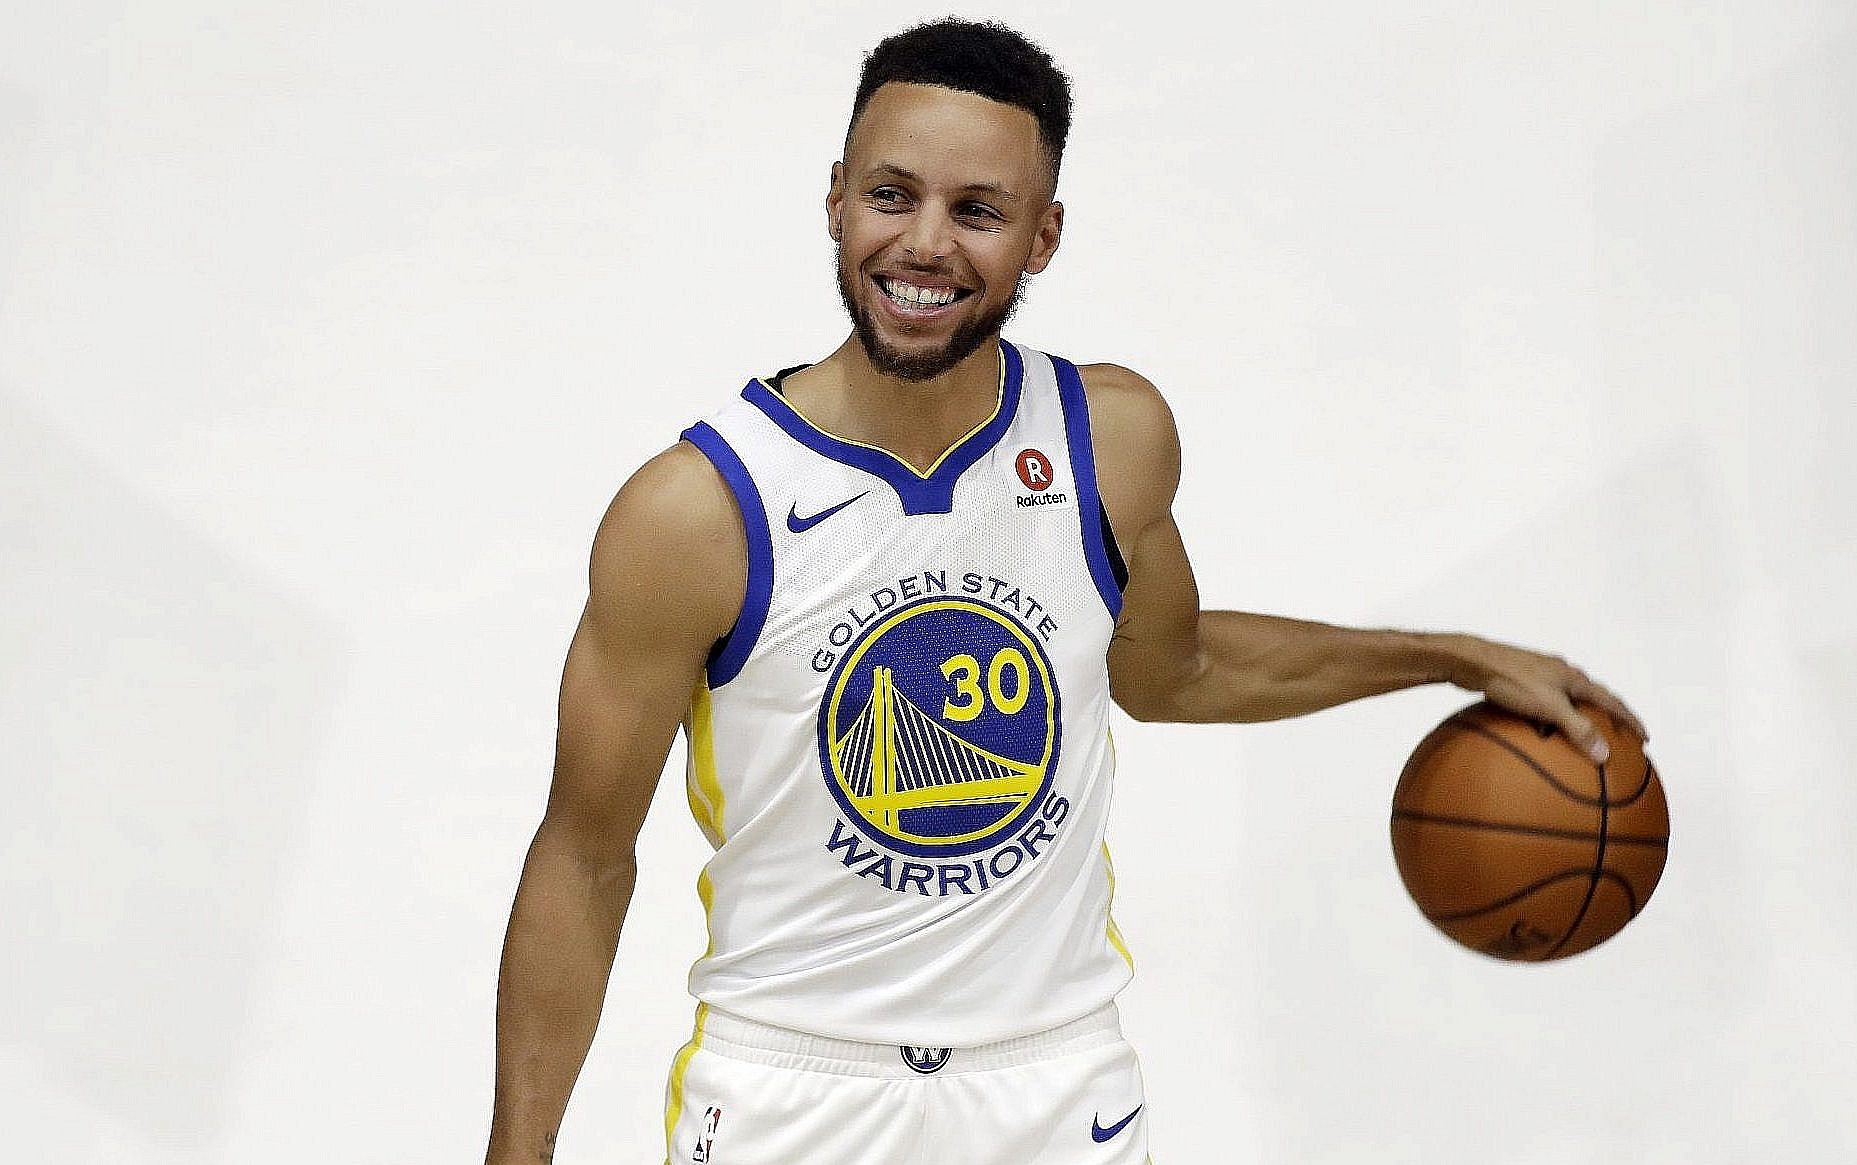 Trump tells NBA star Curry he's no longer invited to White House | The Times of Israel1857 x 1165